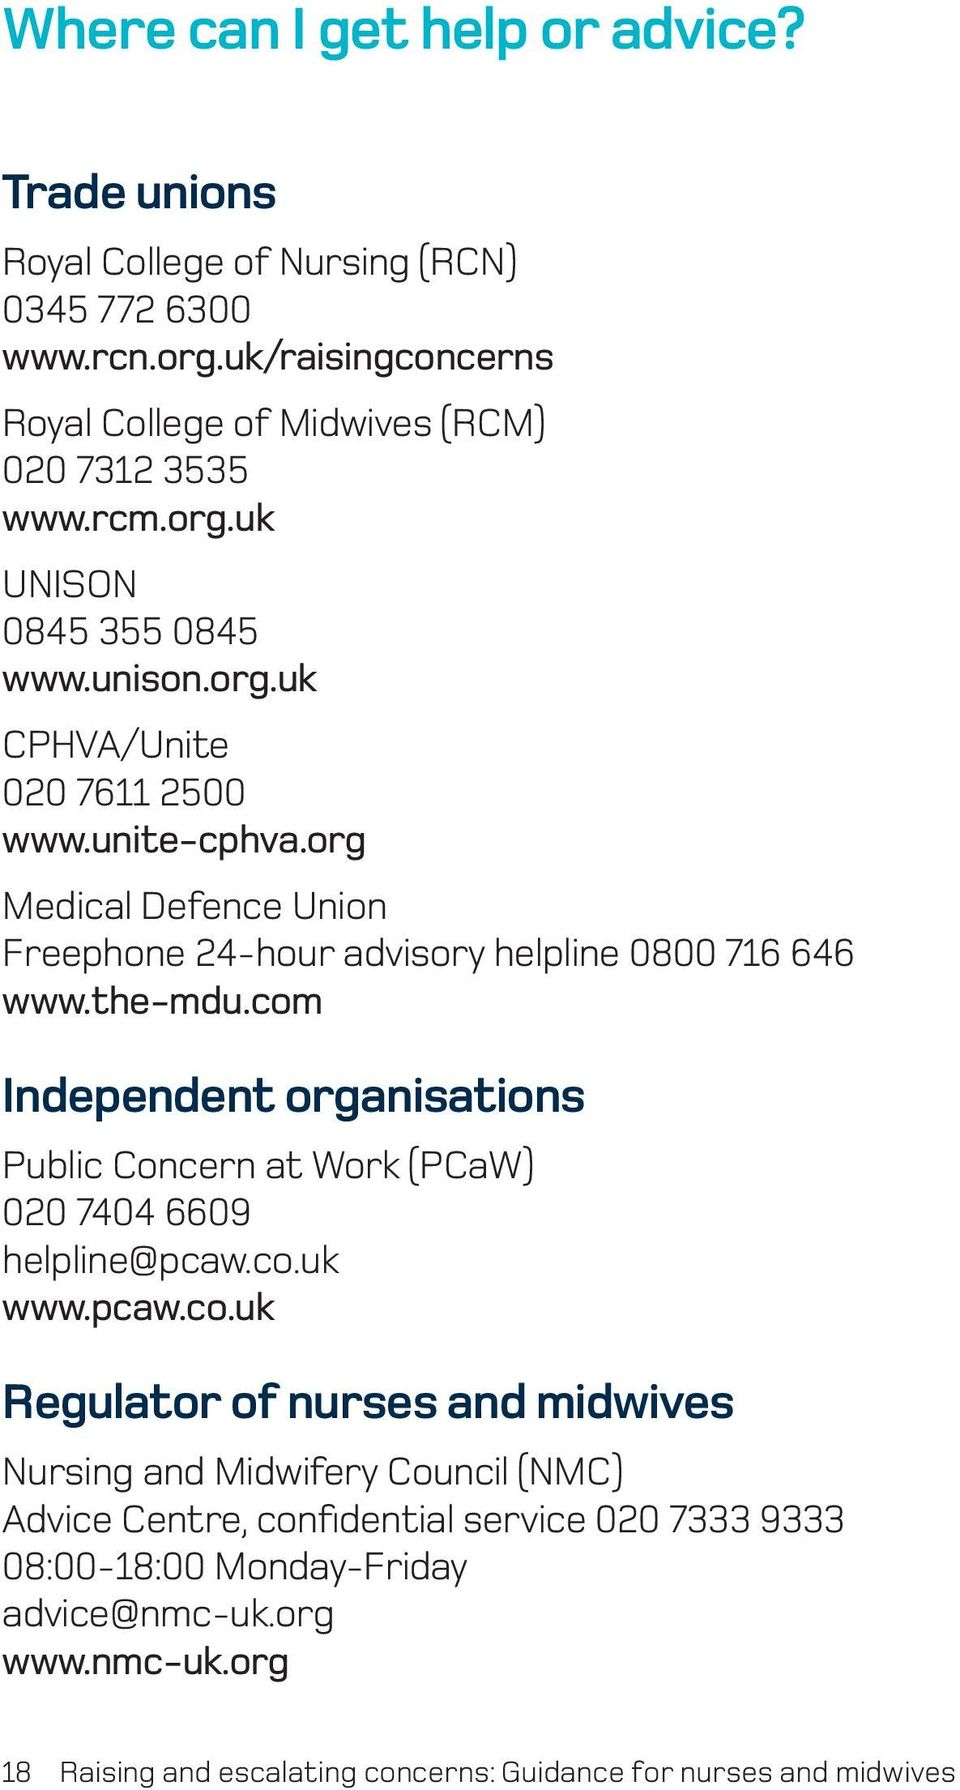 com Independent organisations Public Concern at Work (PCaW) 020 7404 6609 helpline@pcaw.co.uk www.pcaw.co.uk Regulator of nurses and midwives Nursing and Midwifery Council (NMC) Advice Centre, confidential service 020 7333 9333 08:00-18:00 Monday-Friday advice@nmc-uk.